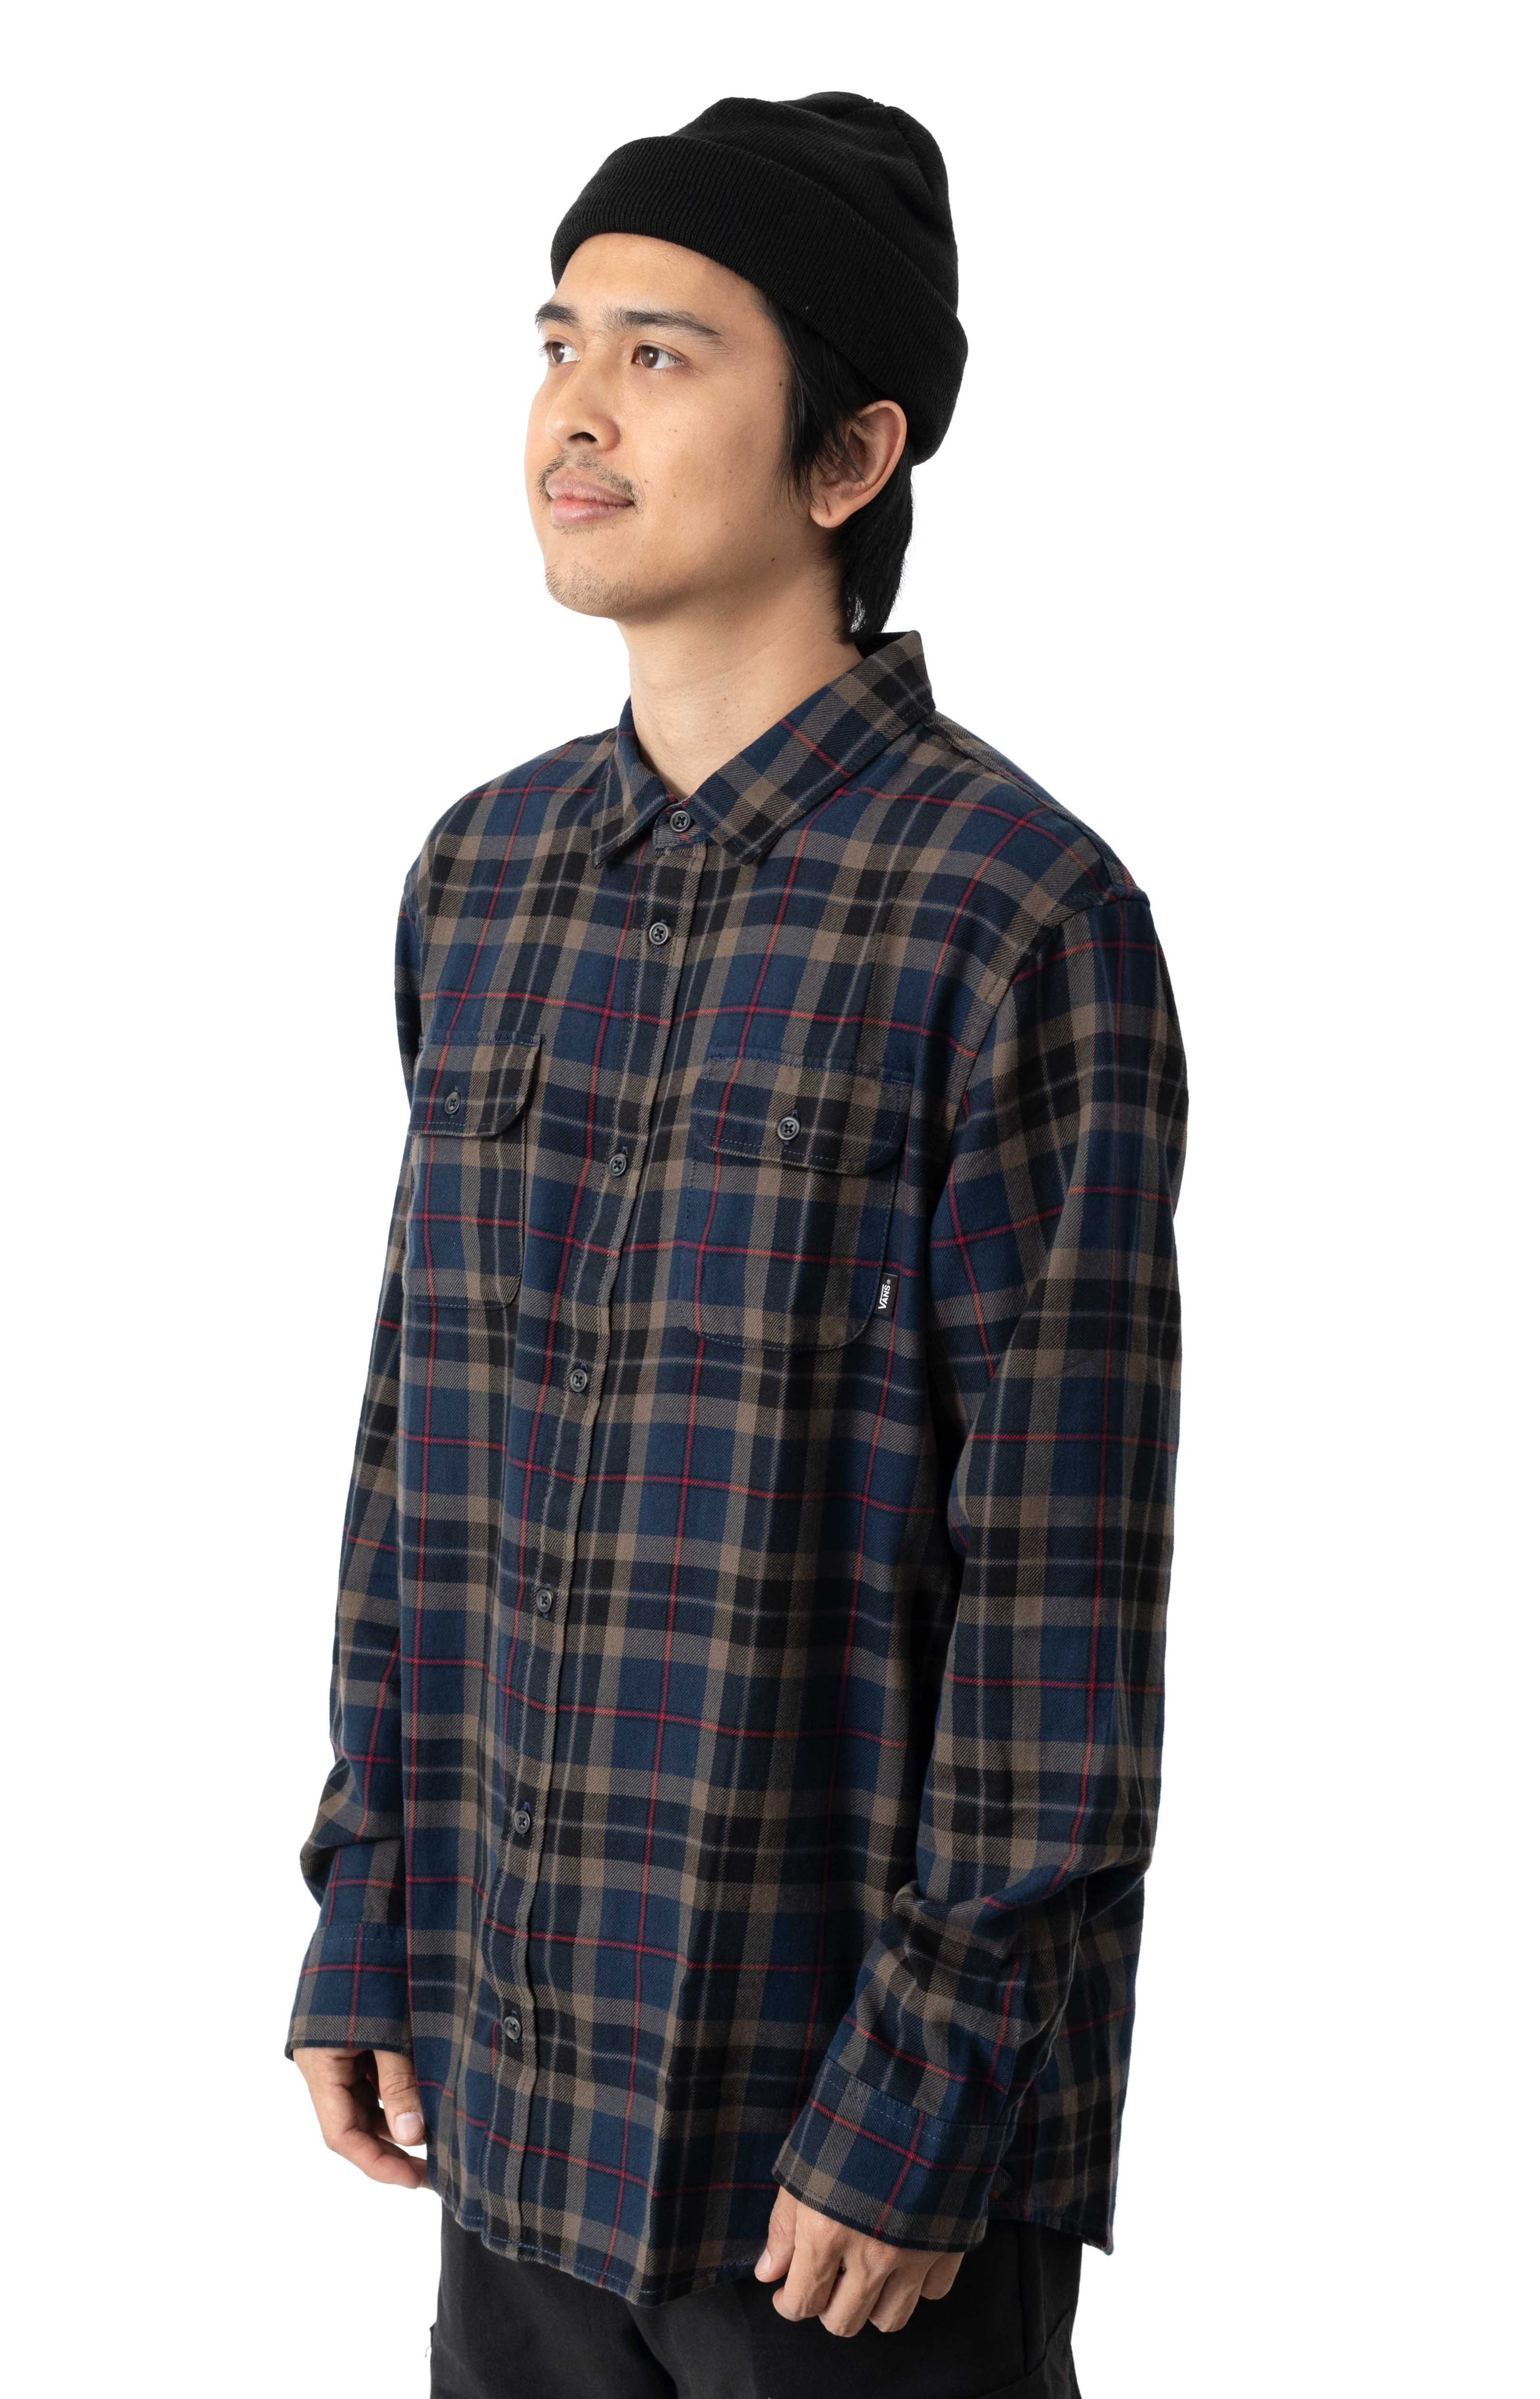 Sycamore Button-Up Shirt - Dress Blues/Canteen  2